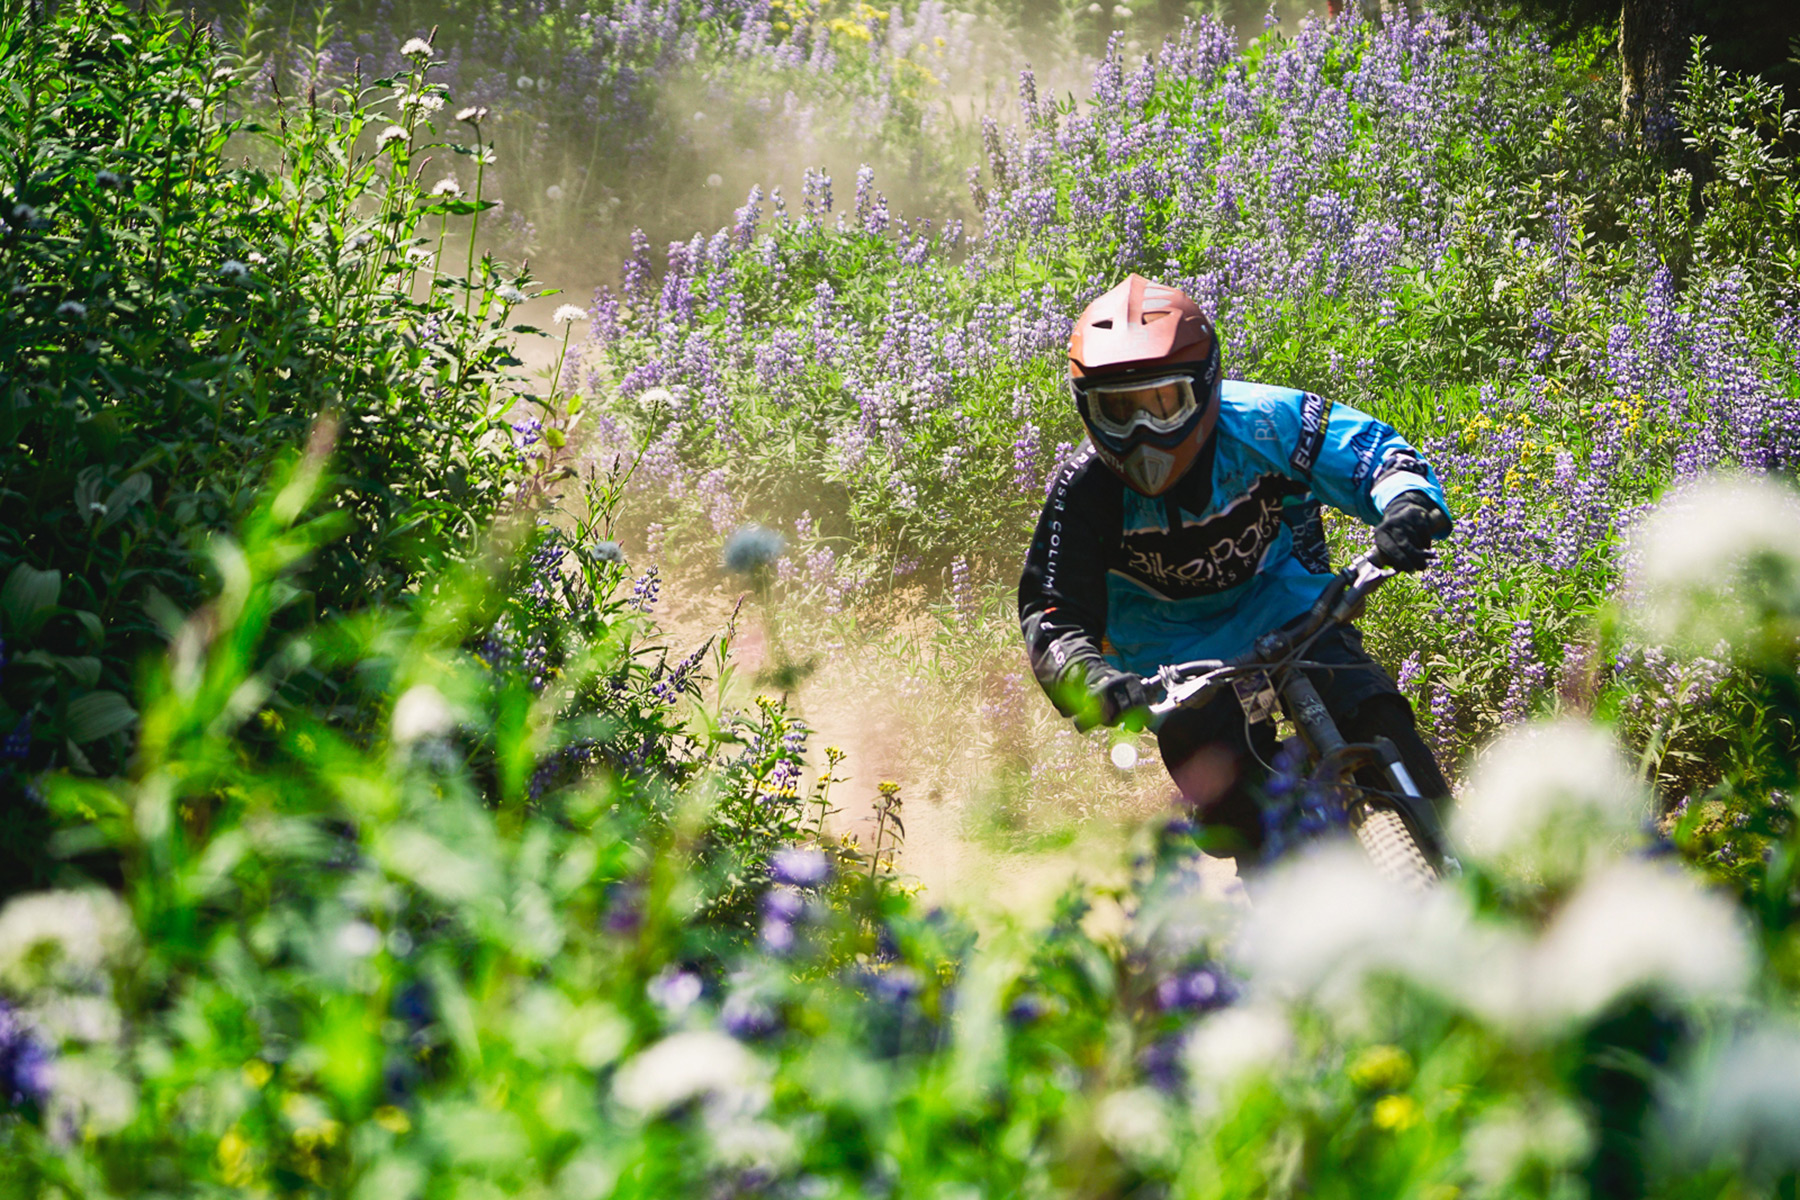 Peak of the Season - Riding through wildflowers in the Bike Park